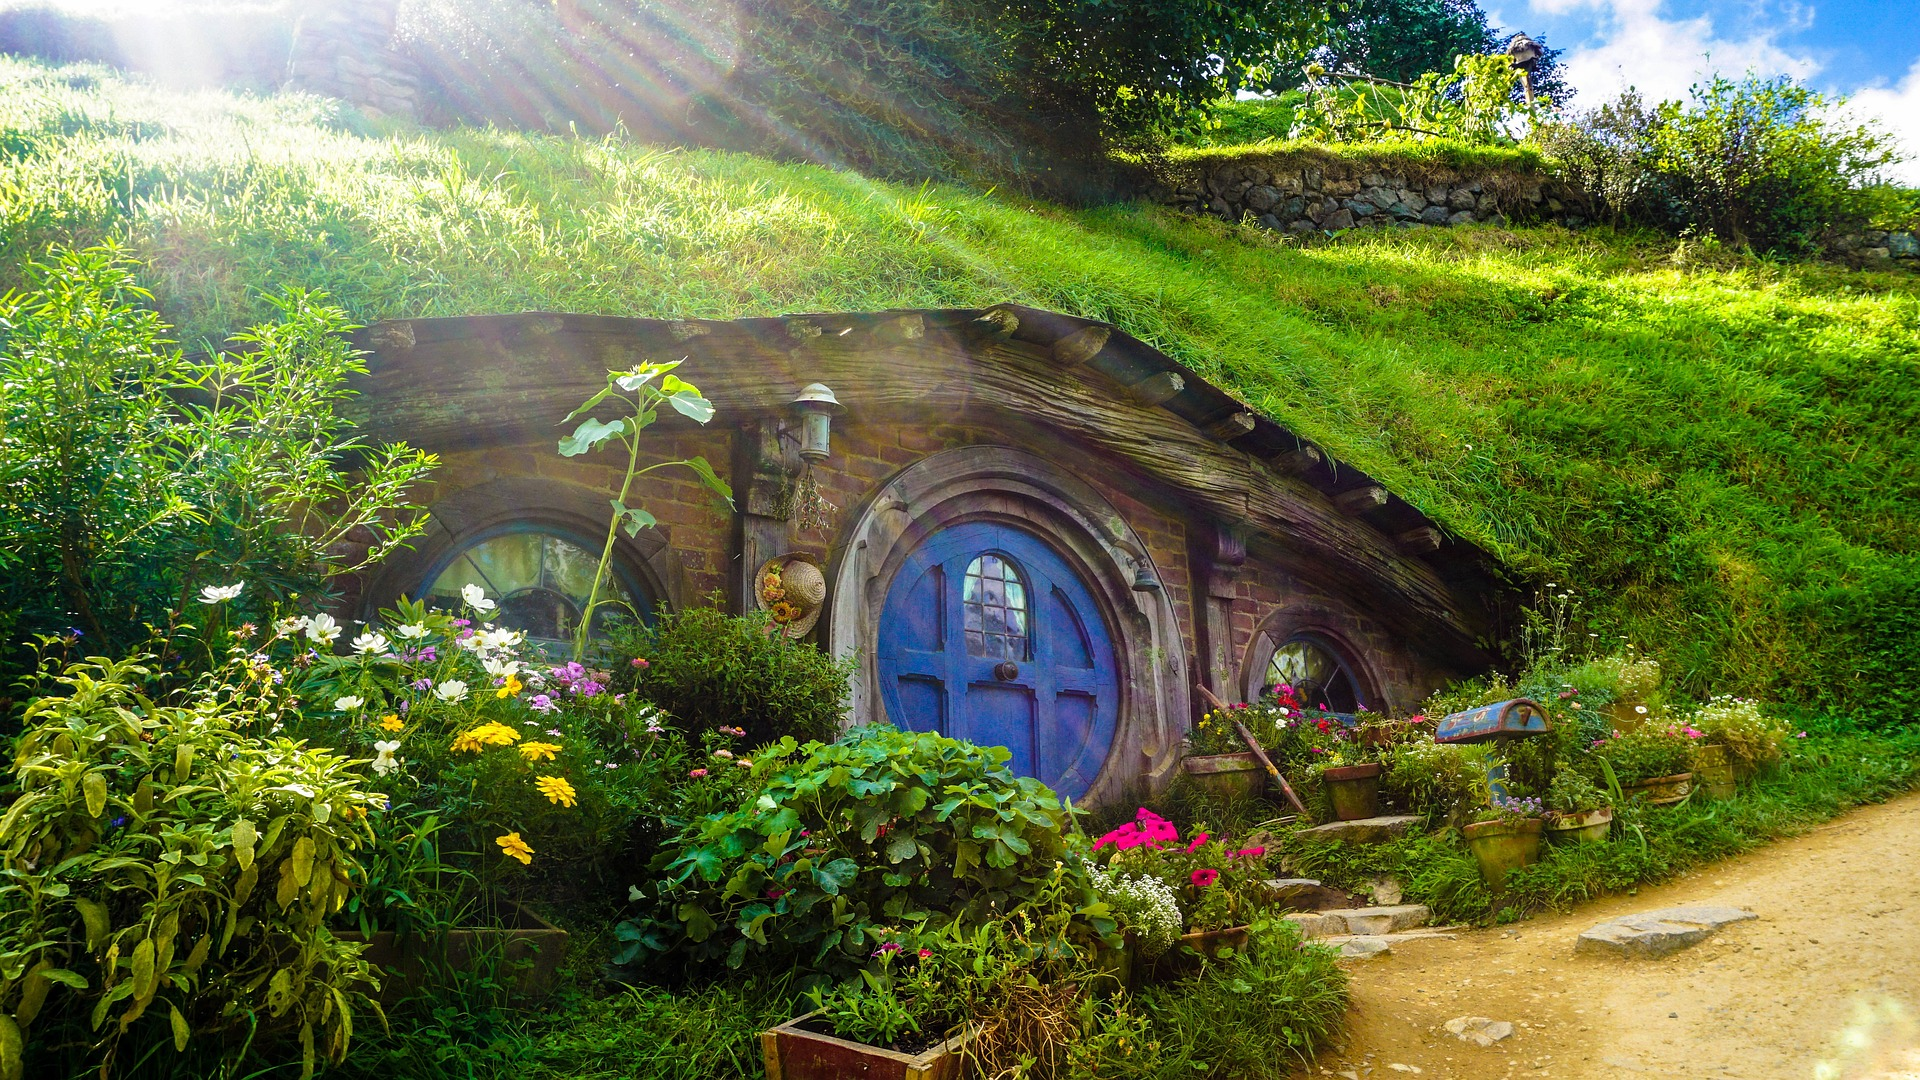 Hobbiton, New Zealand. The longest I had to wait for a visa was for New Zealand: Almost 7 weeks.